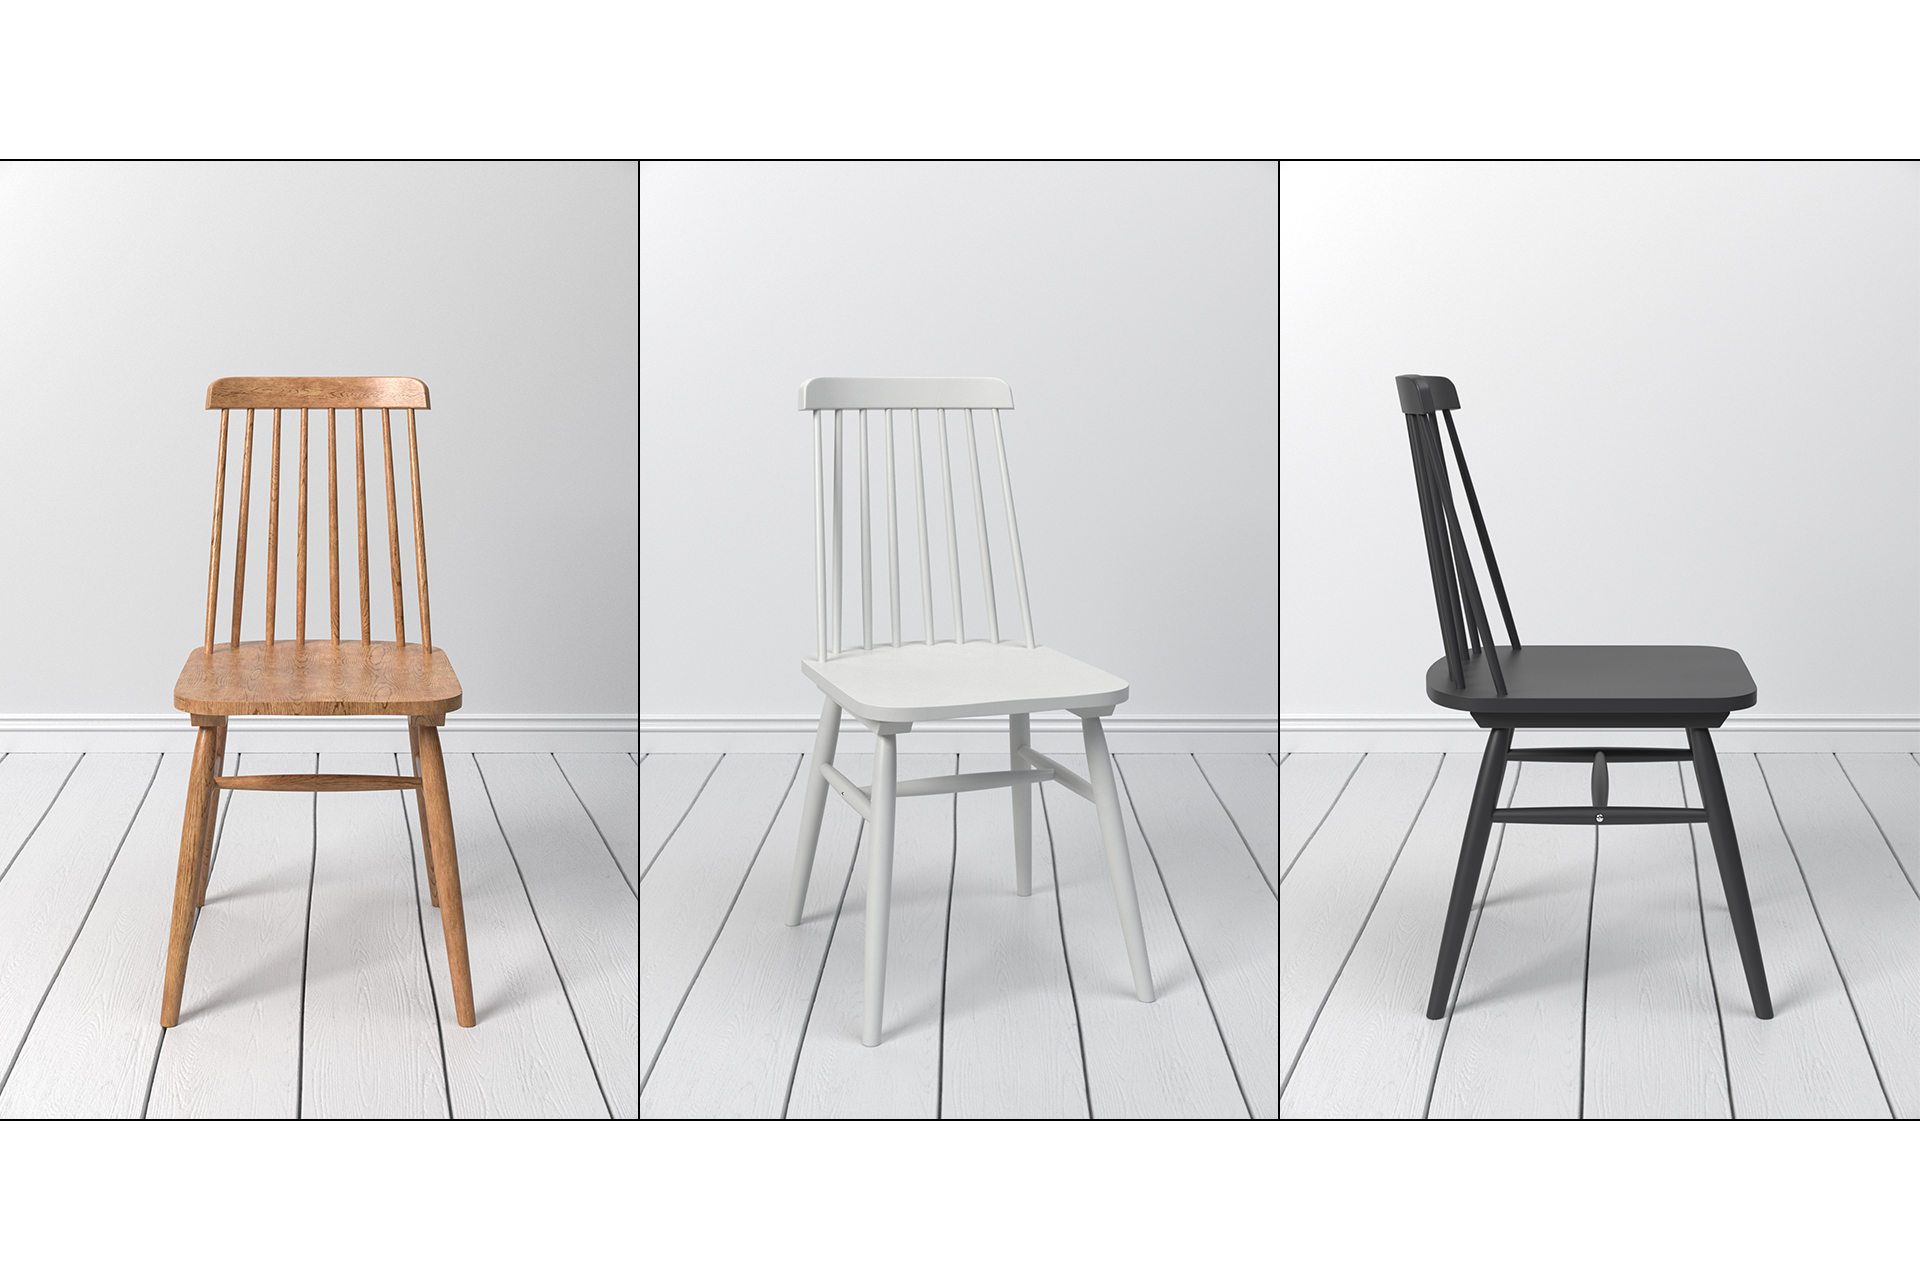 LaForma Albeup Scandinavian Chair 3D Model